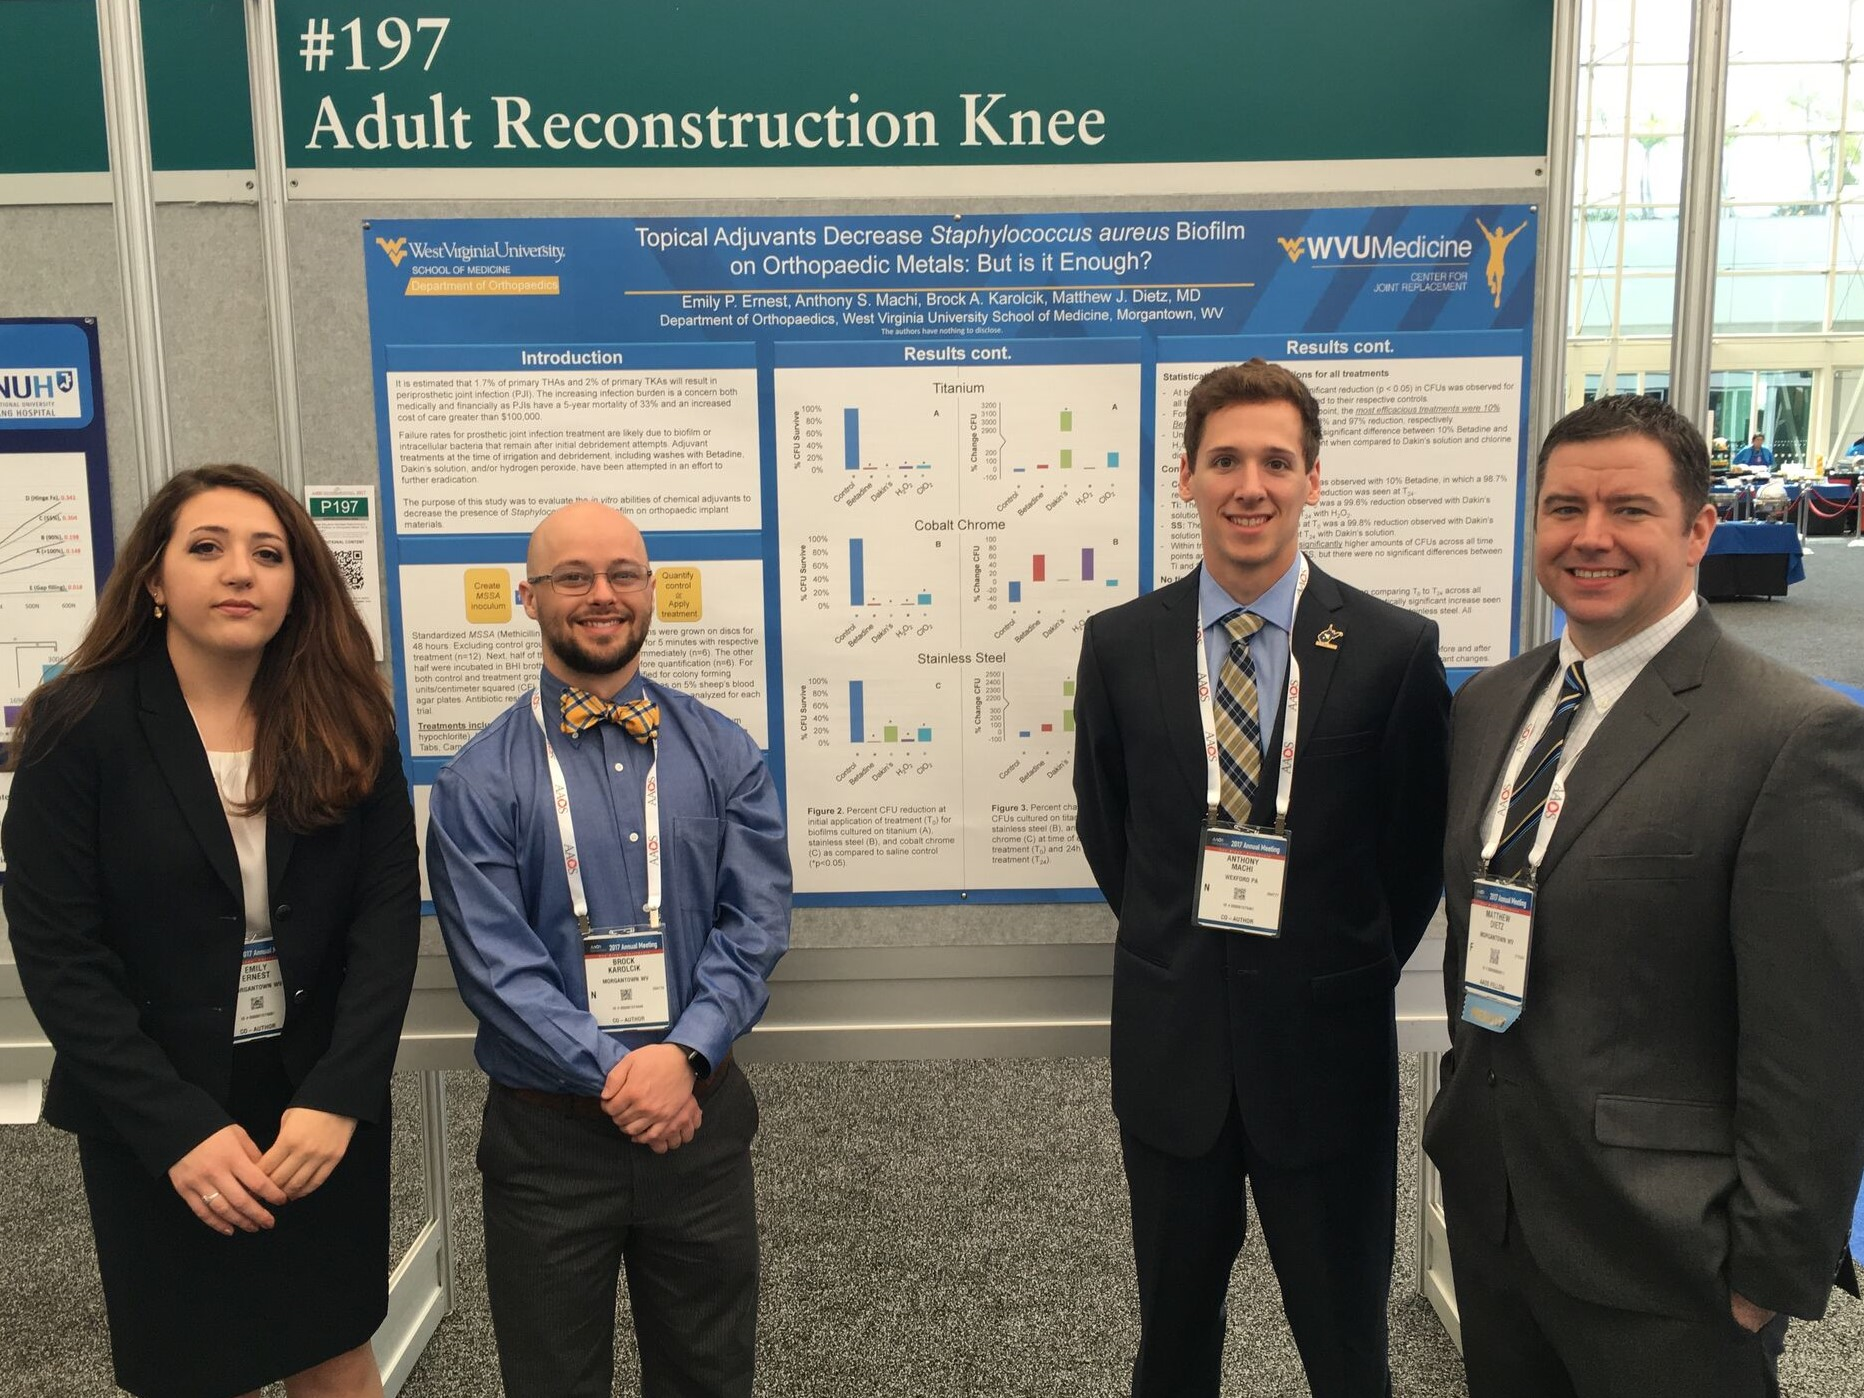 Presenters at the AAOS 2017 conference